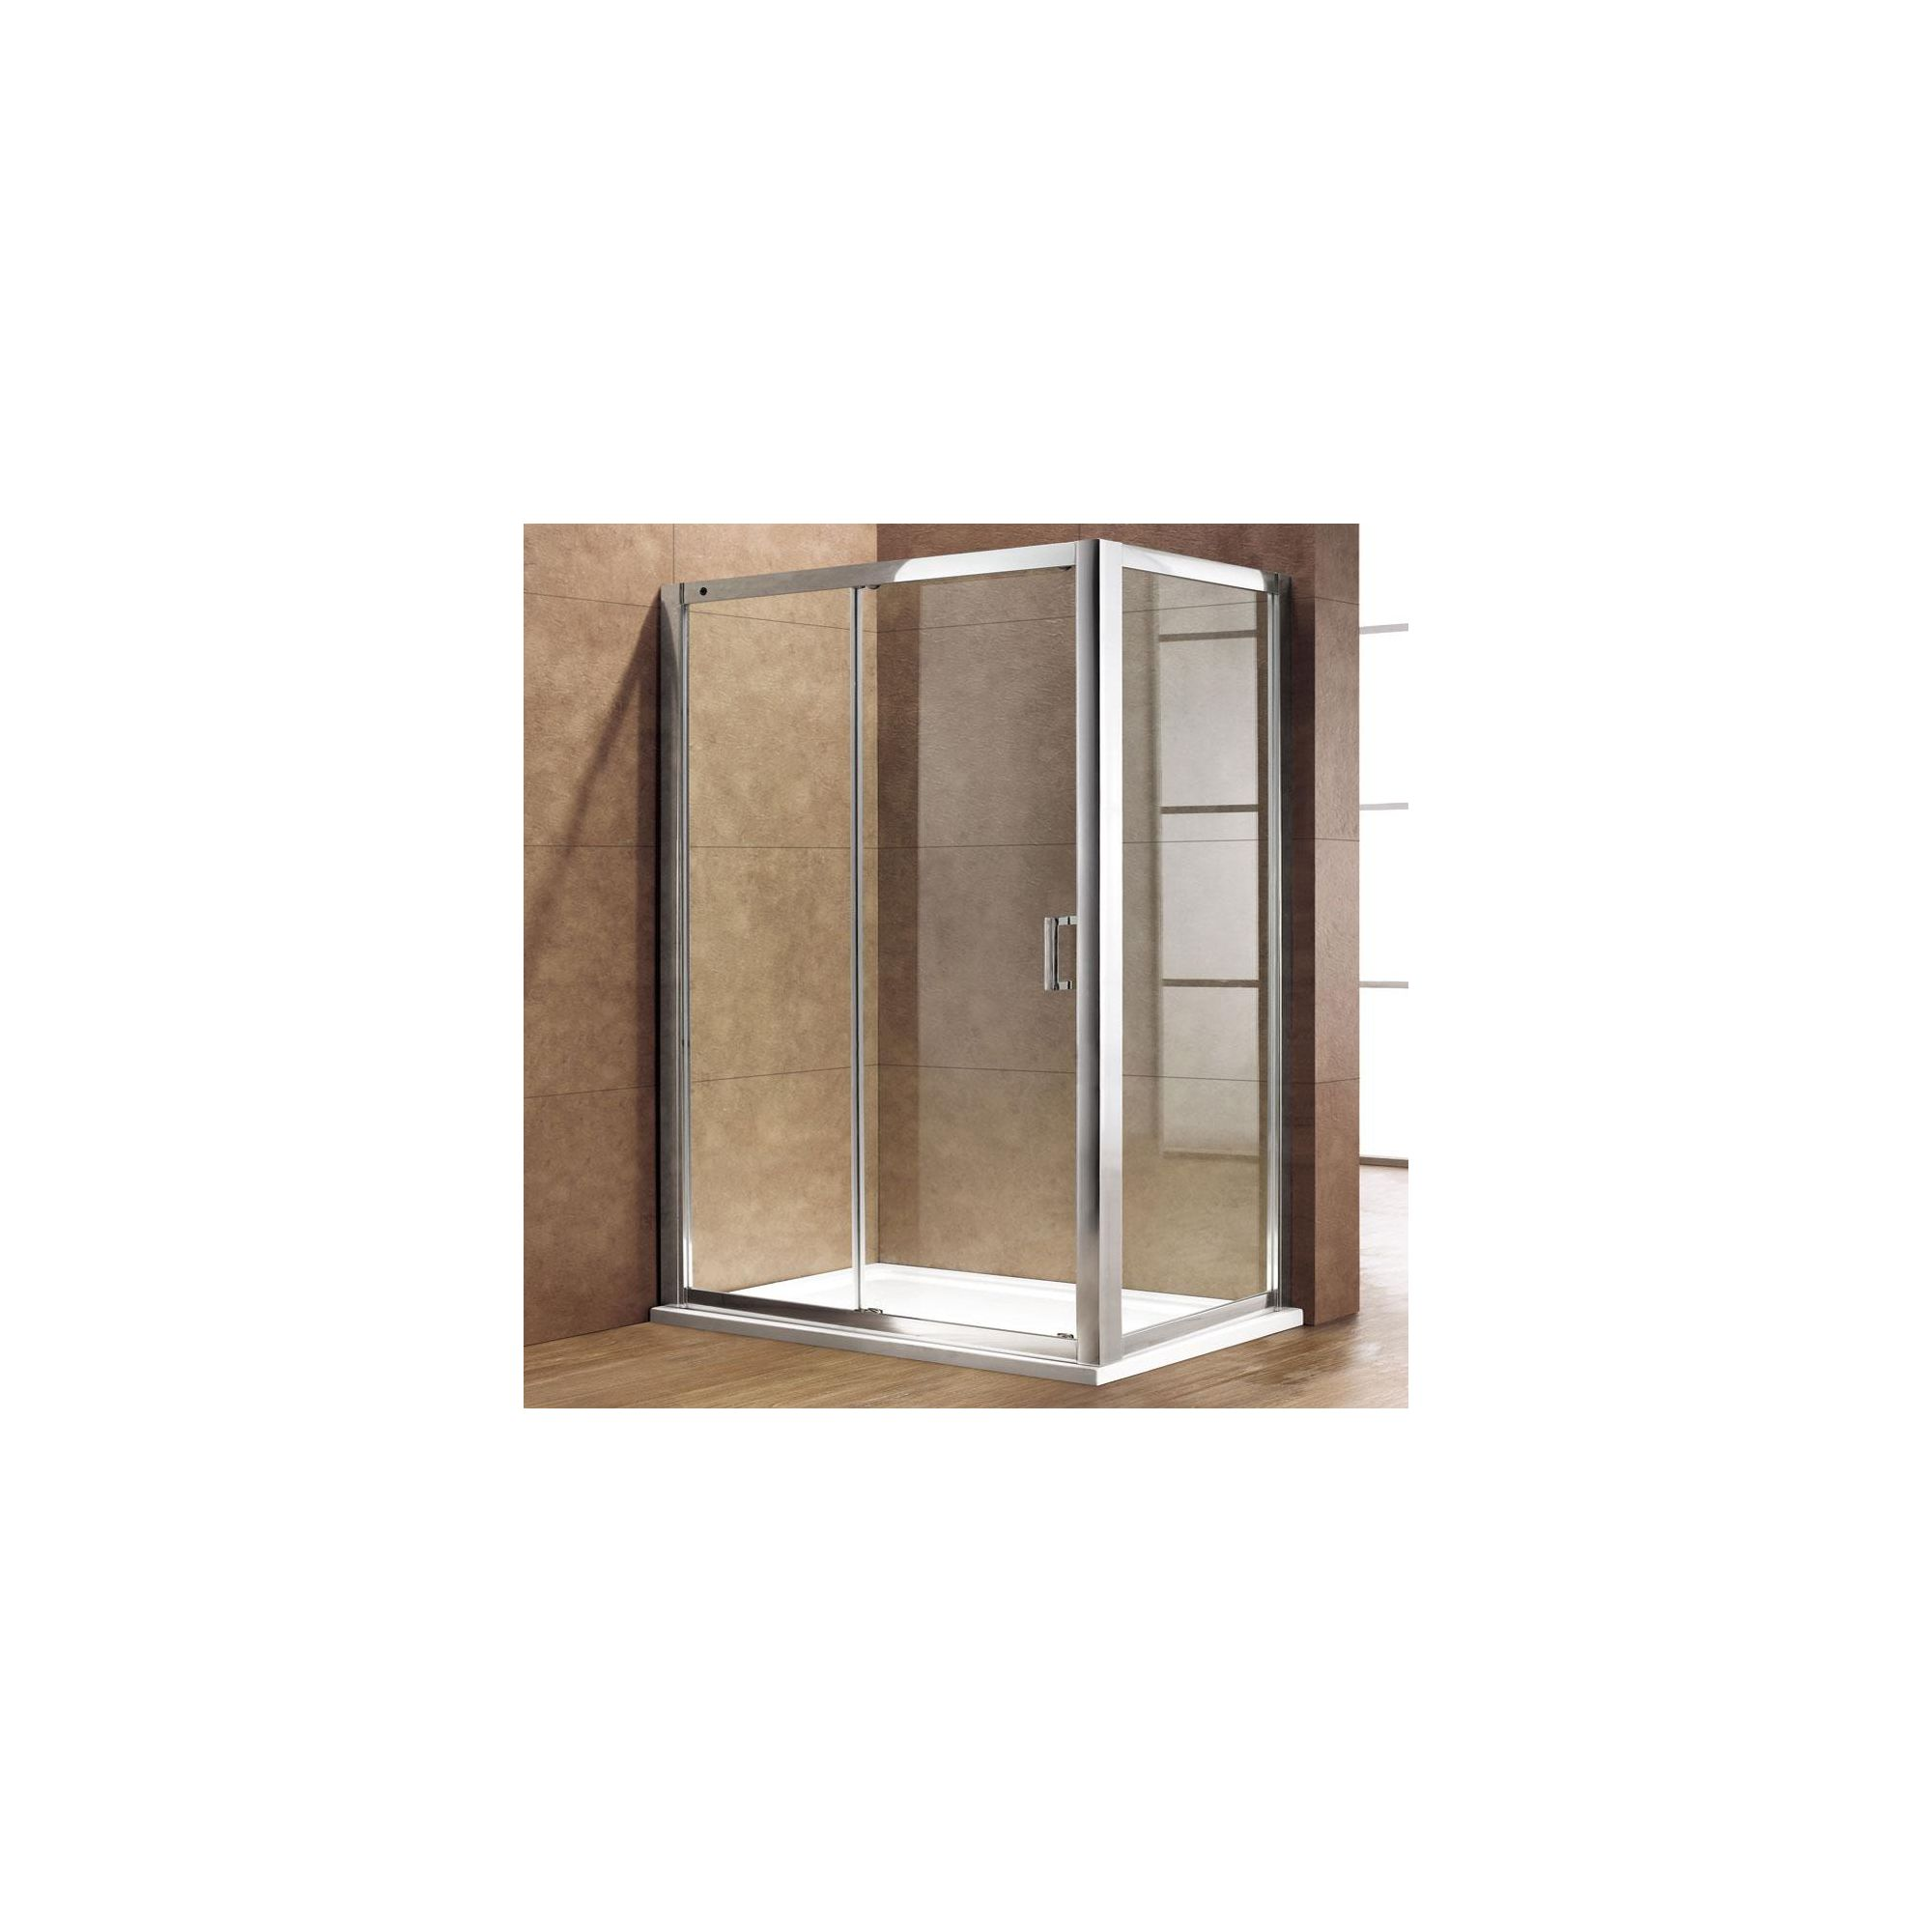 Duchy Premium Single Sliding Door Shower Enclosure, 1700mm x 800mm, 8mm Glass, Low Profile Tray at Tesco Direct